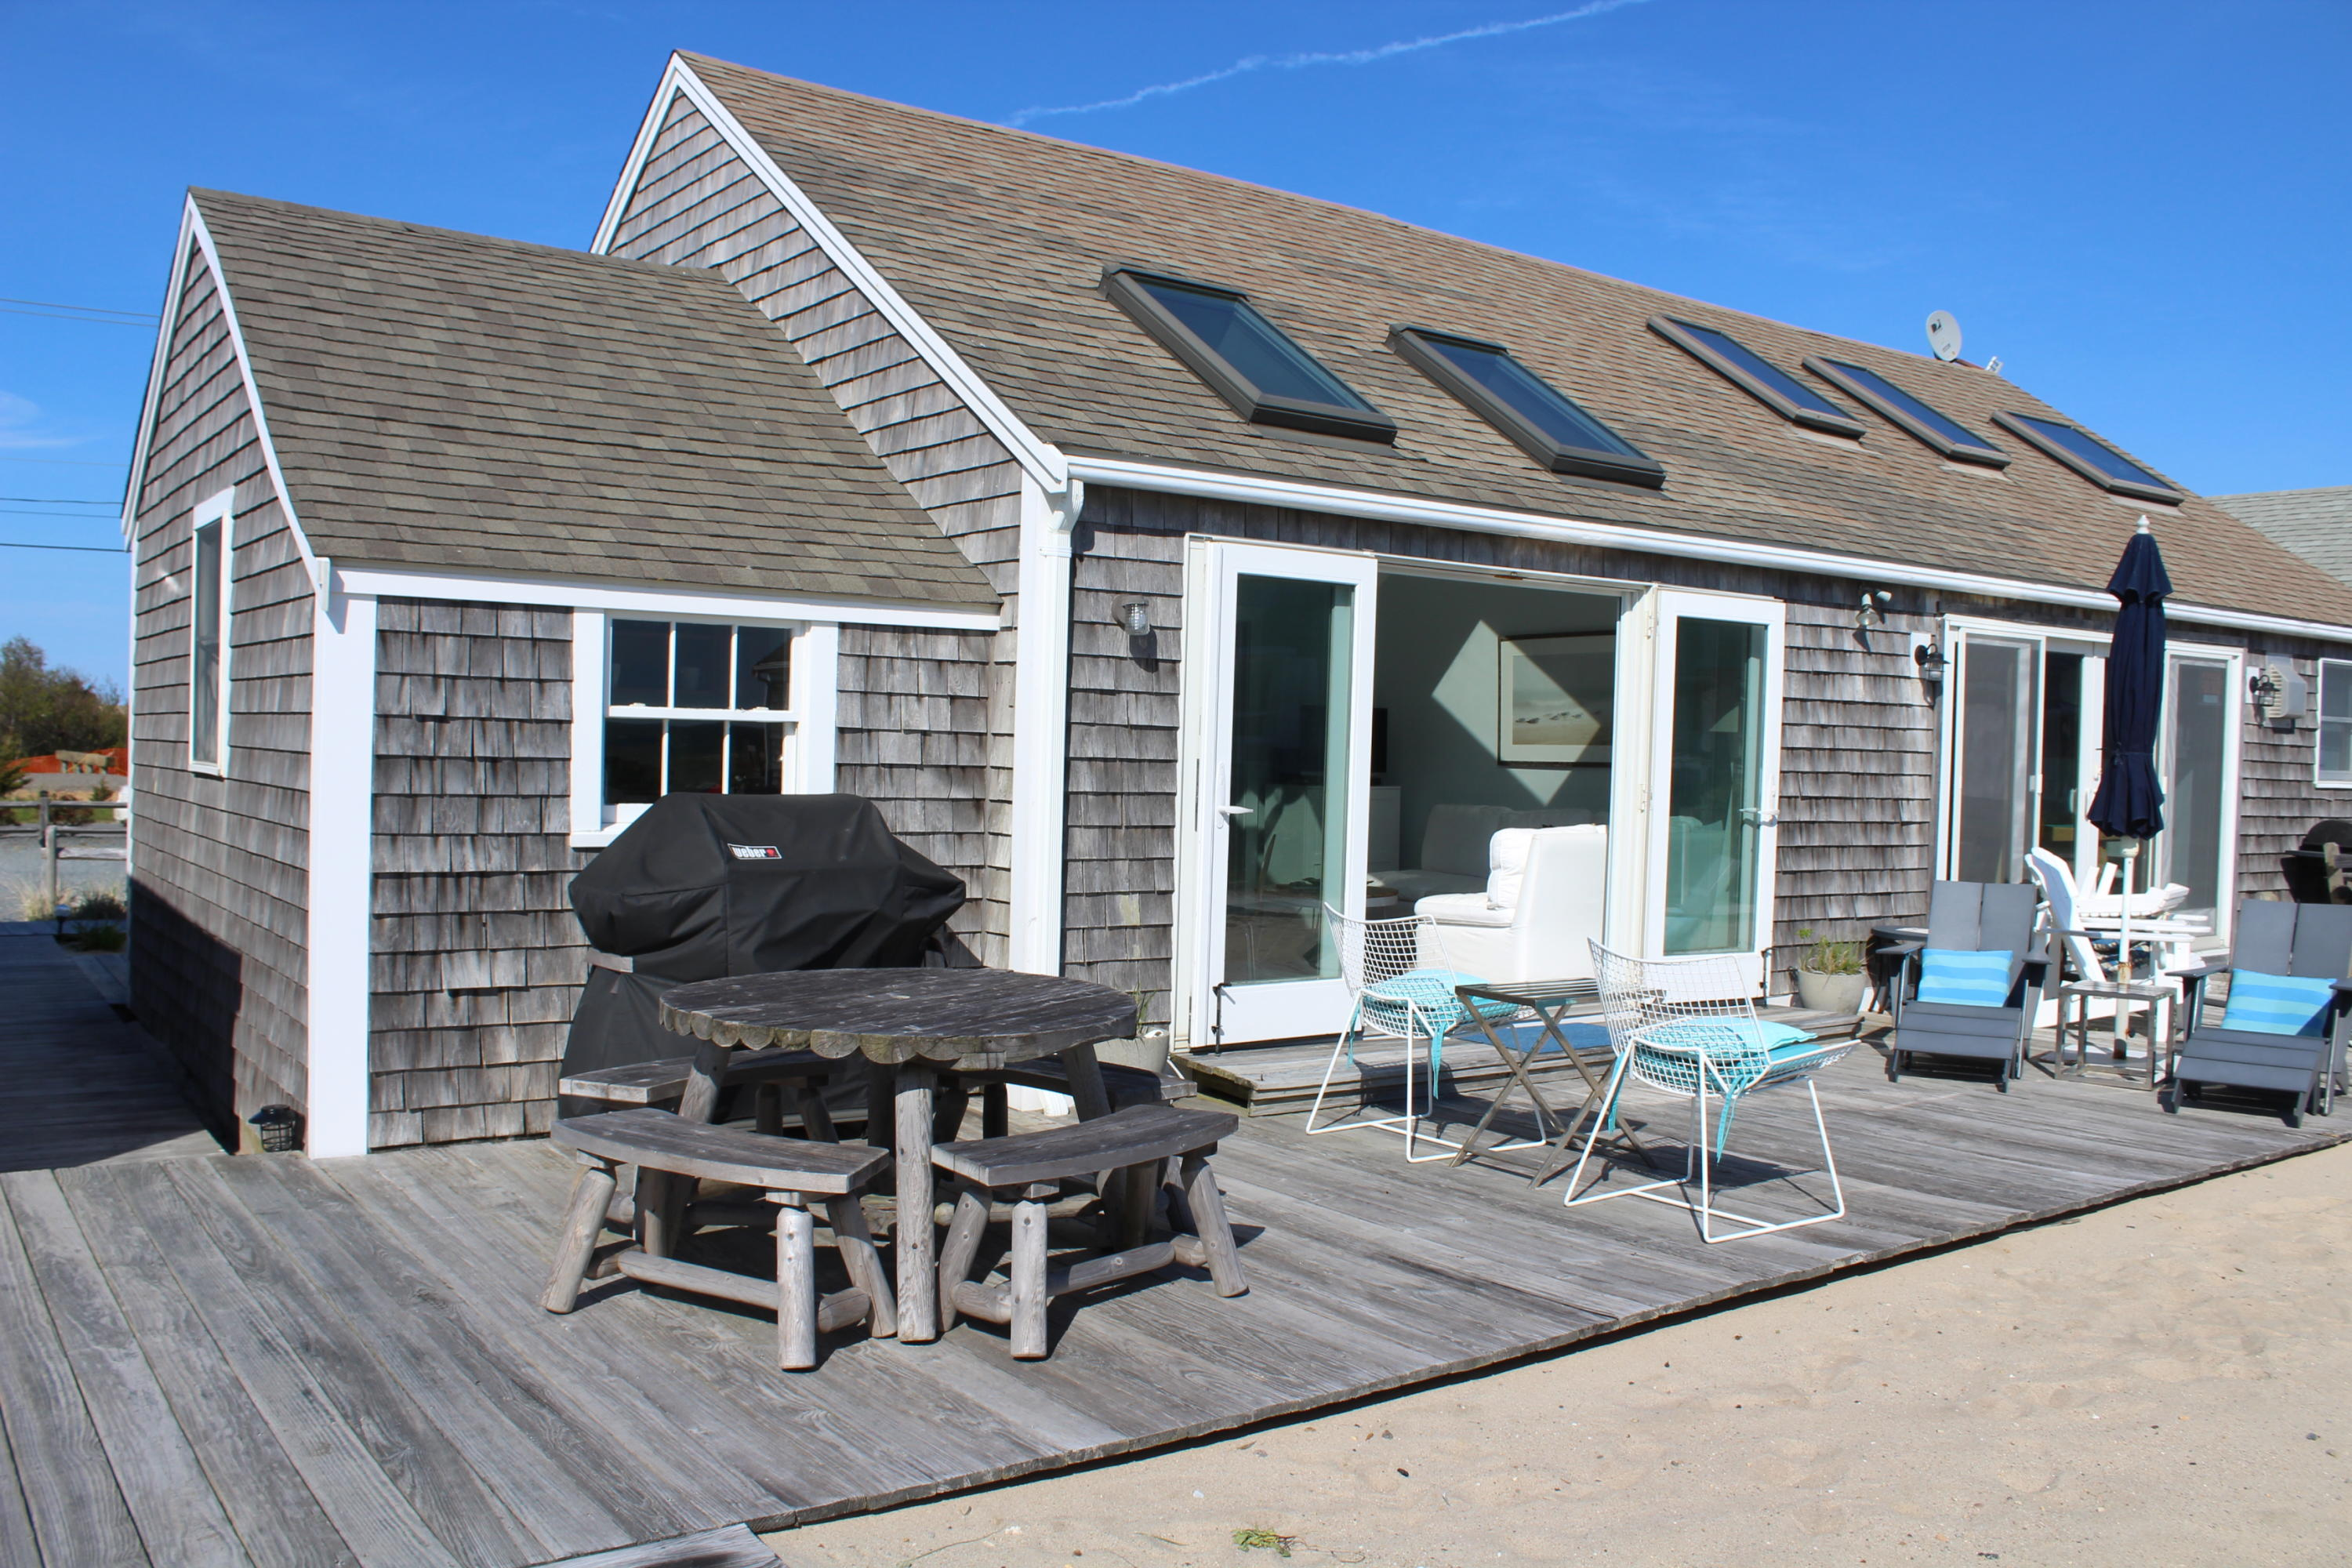 596 Shore Road, North Truro MA, 02652 details